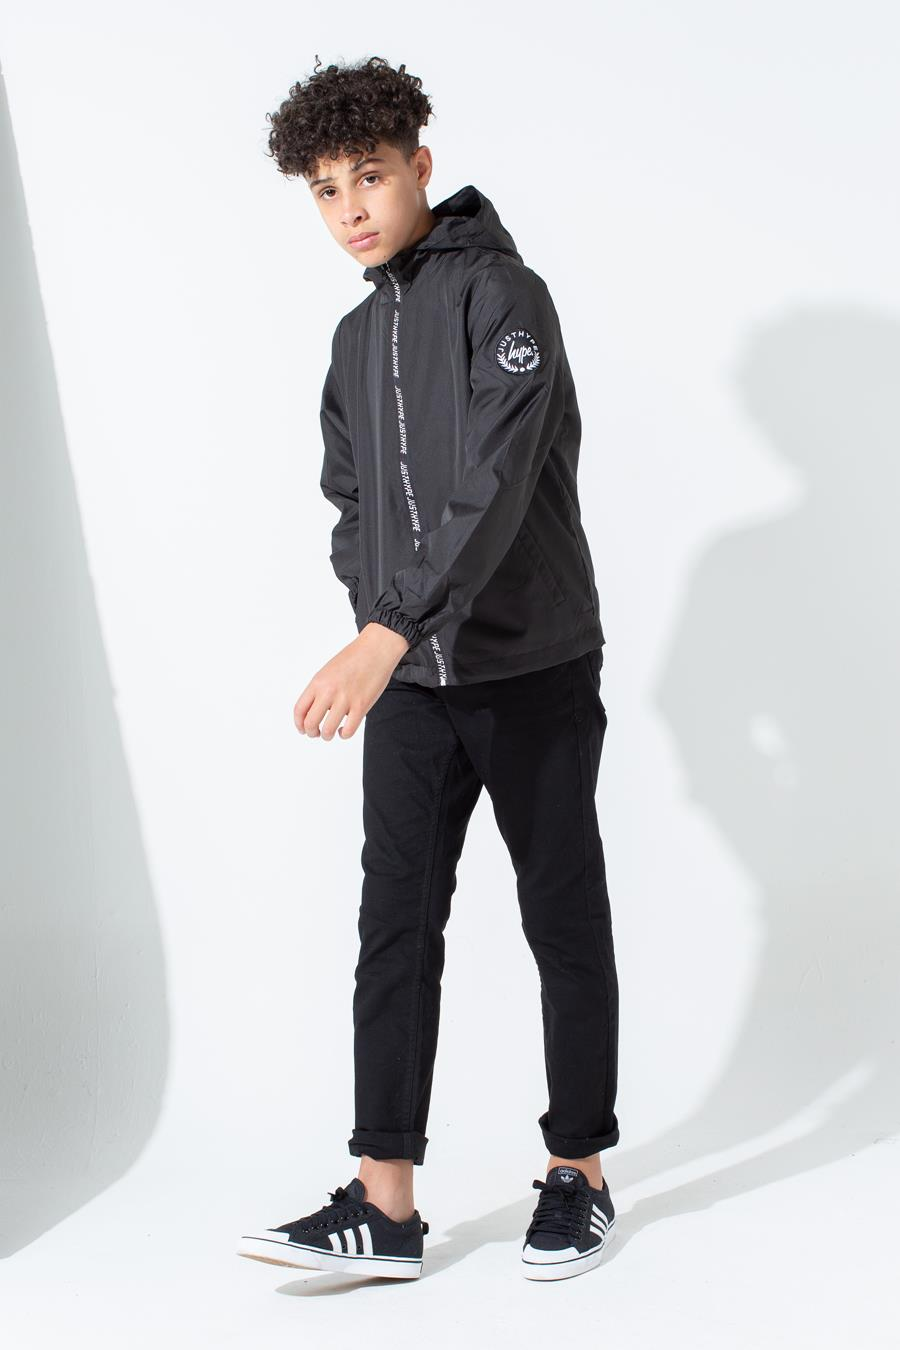 new concept classic styles on feet images of HYPE BLACK JUST HYPE TAPED KIDS RUNNER JACKET | Justhype ltd